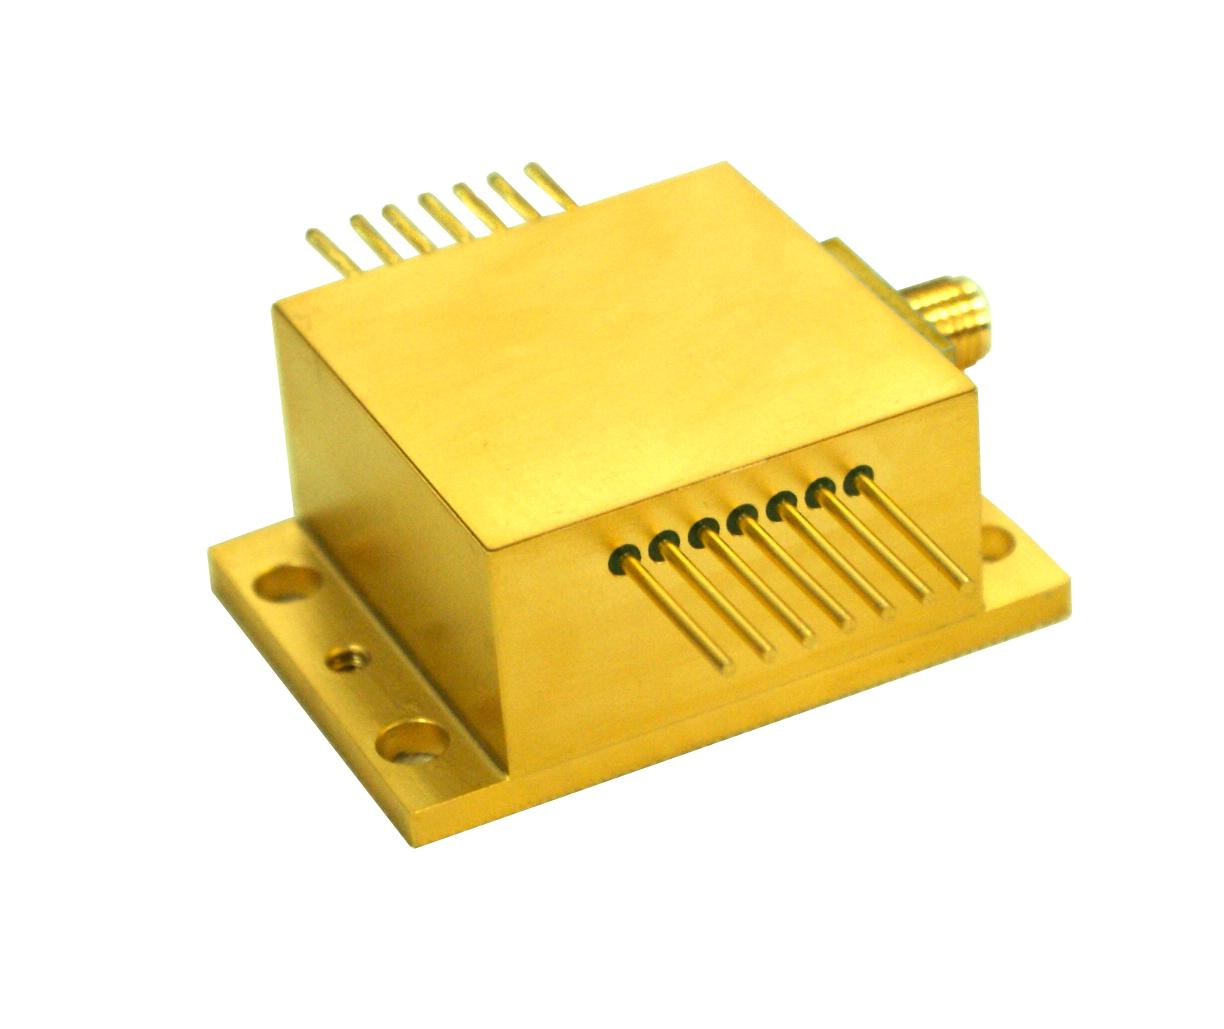 Fiber Coupled Single Emitter FCSE04 series